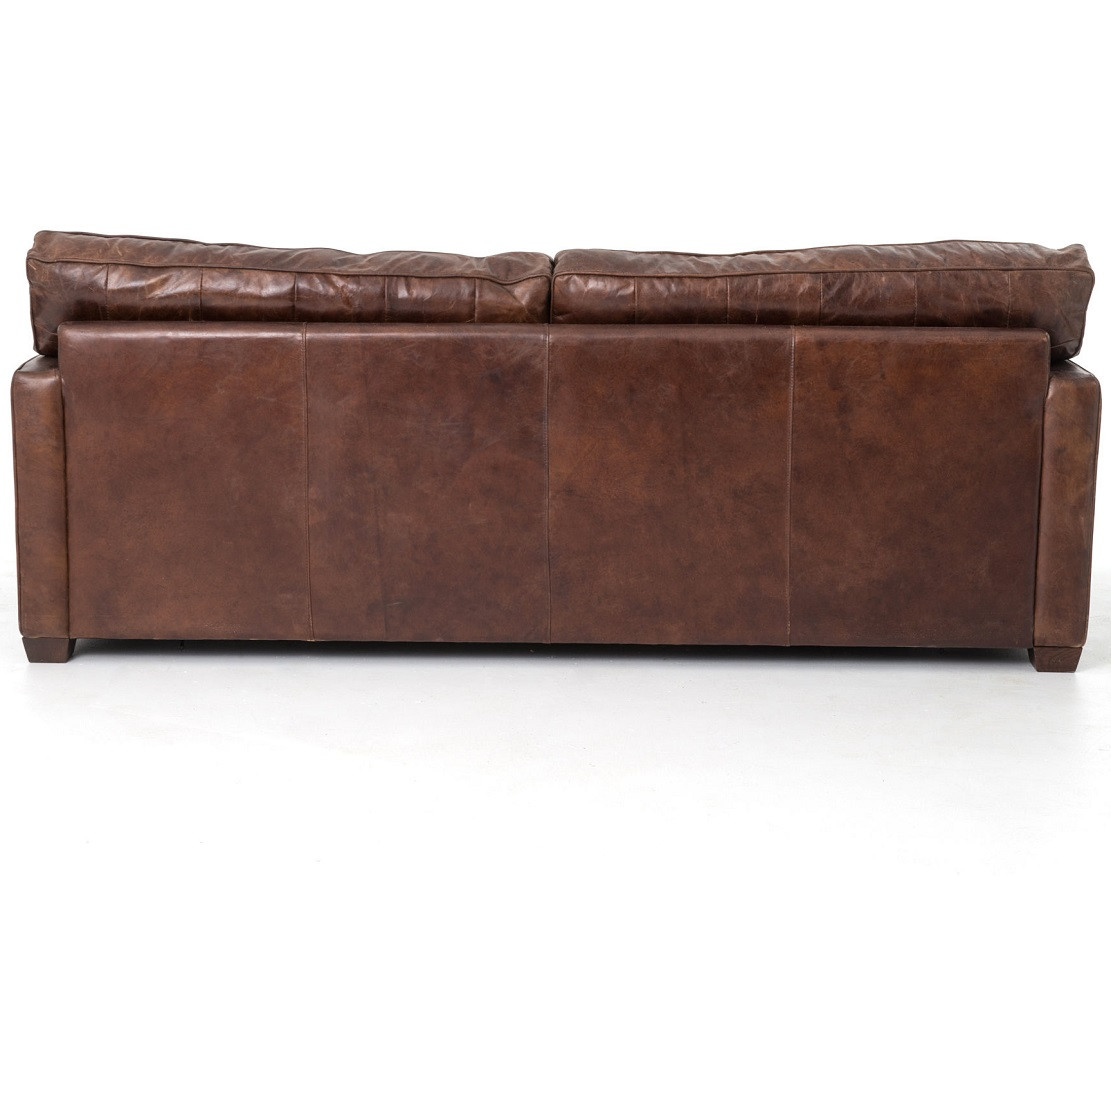 abbott vintage cigar tufted leather sofa with recliners slipcover odelia sofas